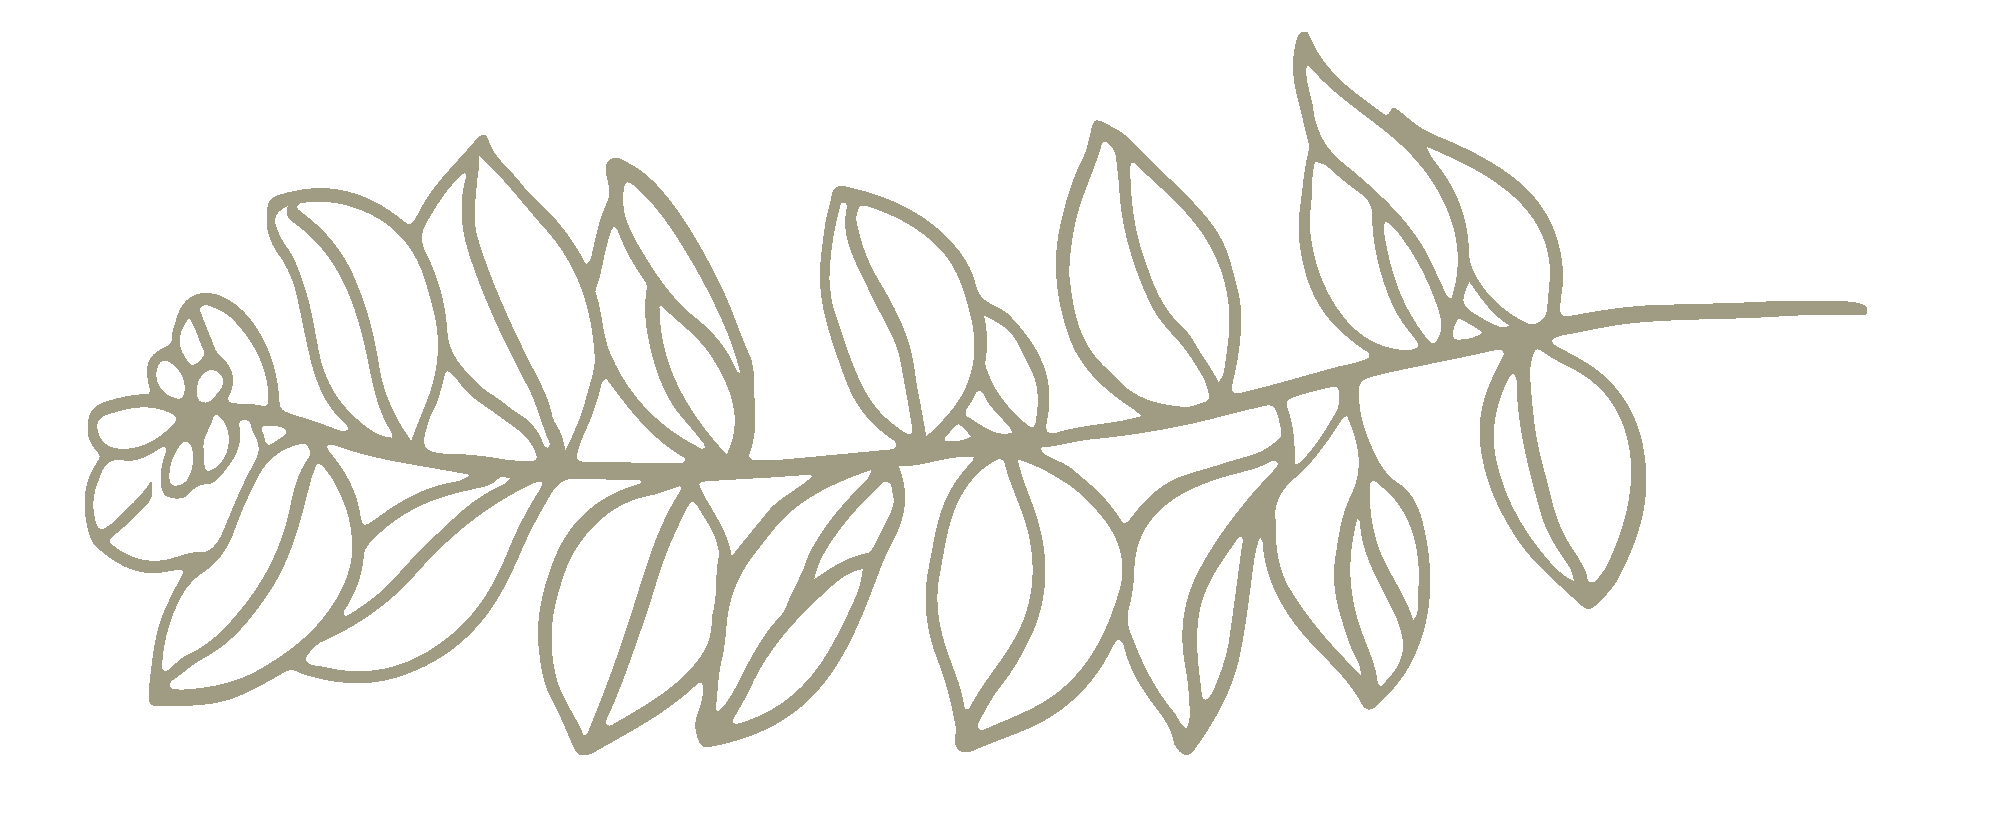 Hand drawn floral 06.png